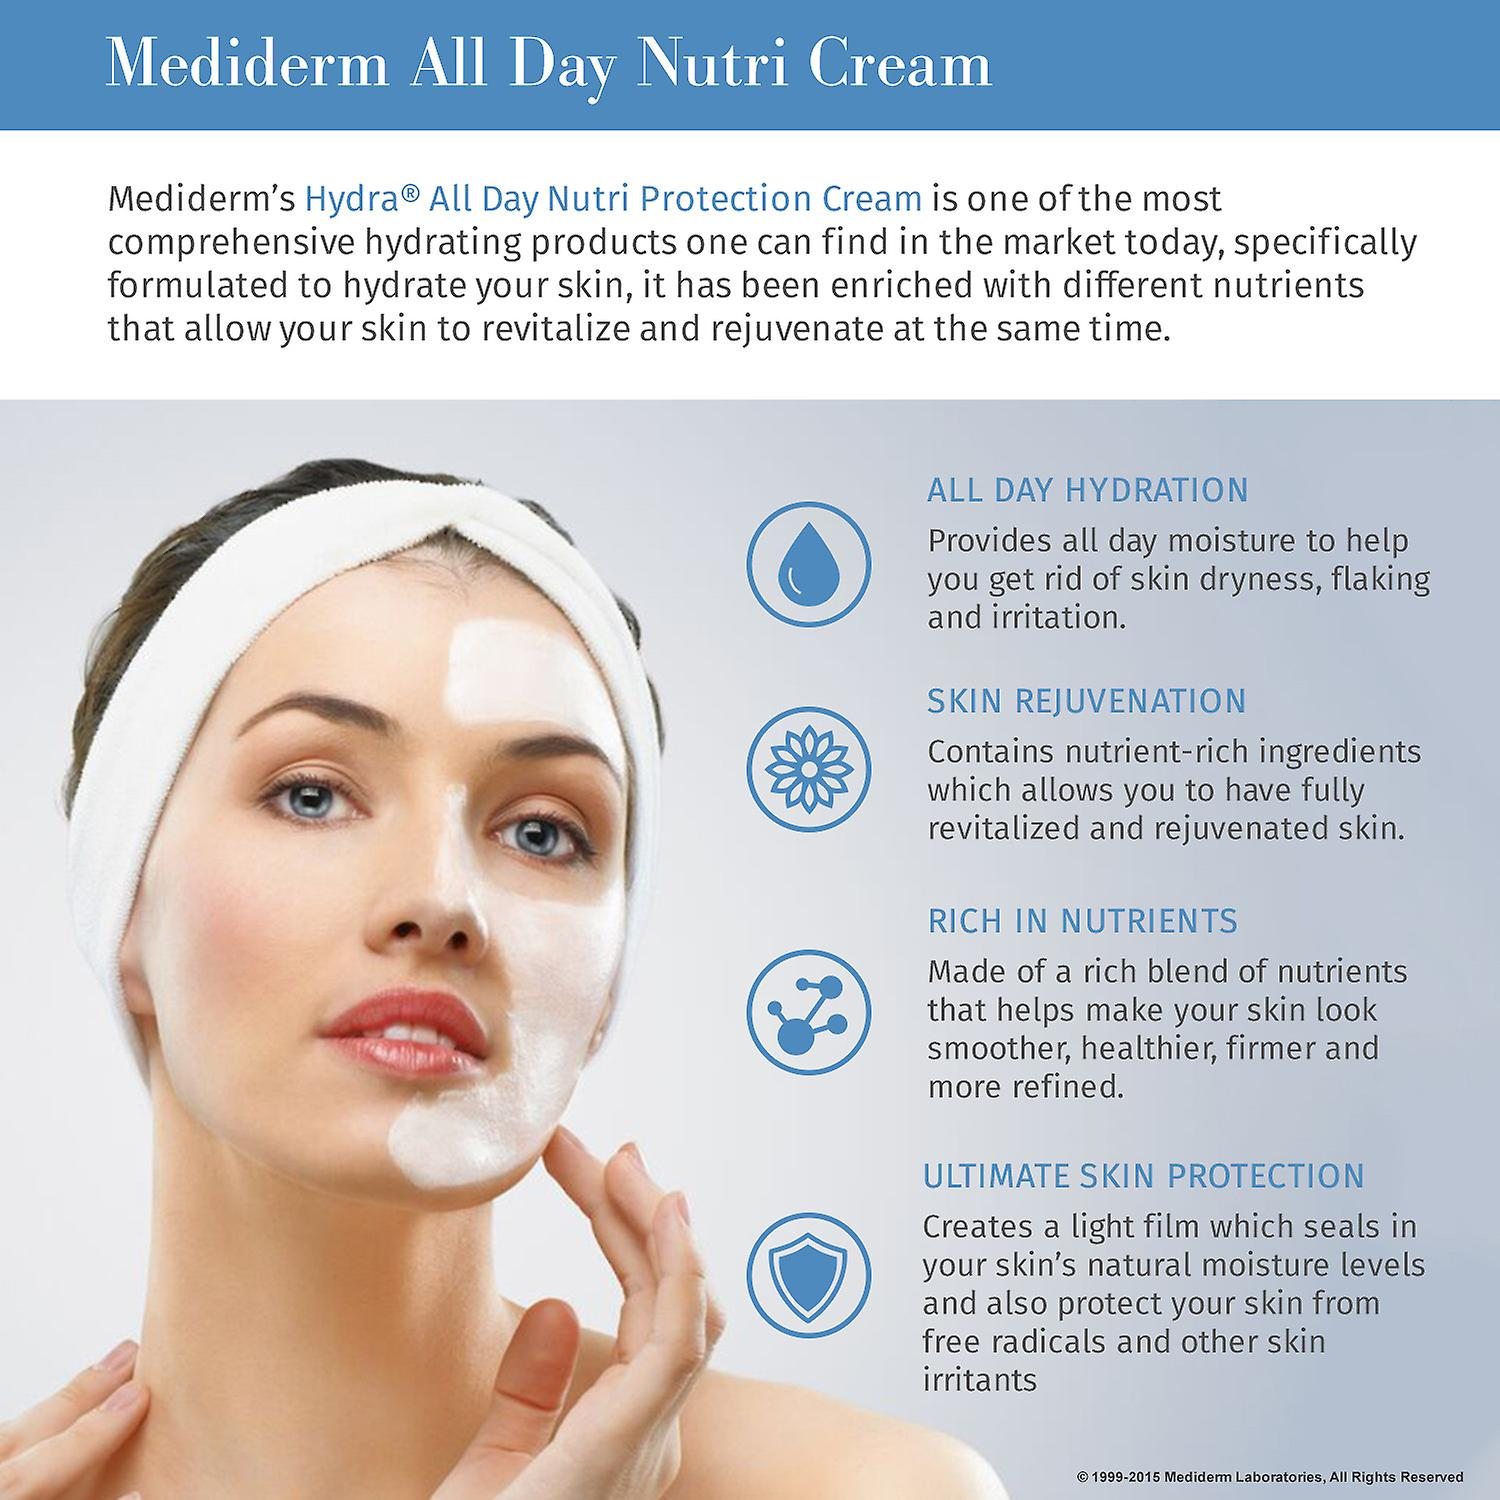 MediDerm Hydra All Day Nutri Protection Cream - Excellent Facial Moisturizer